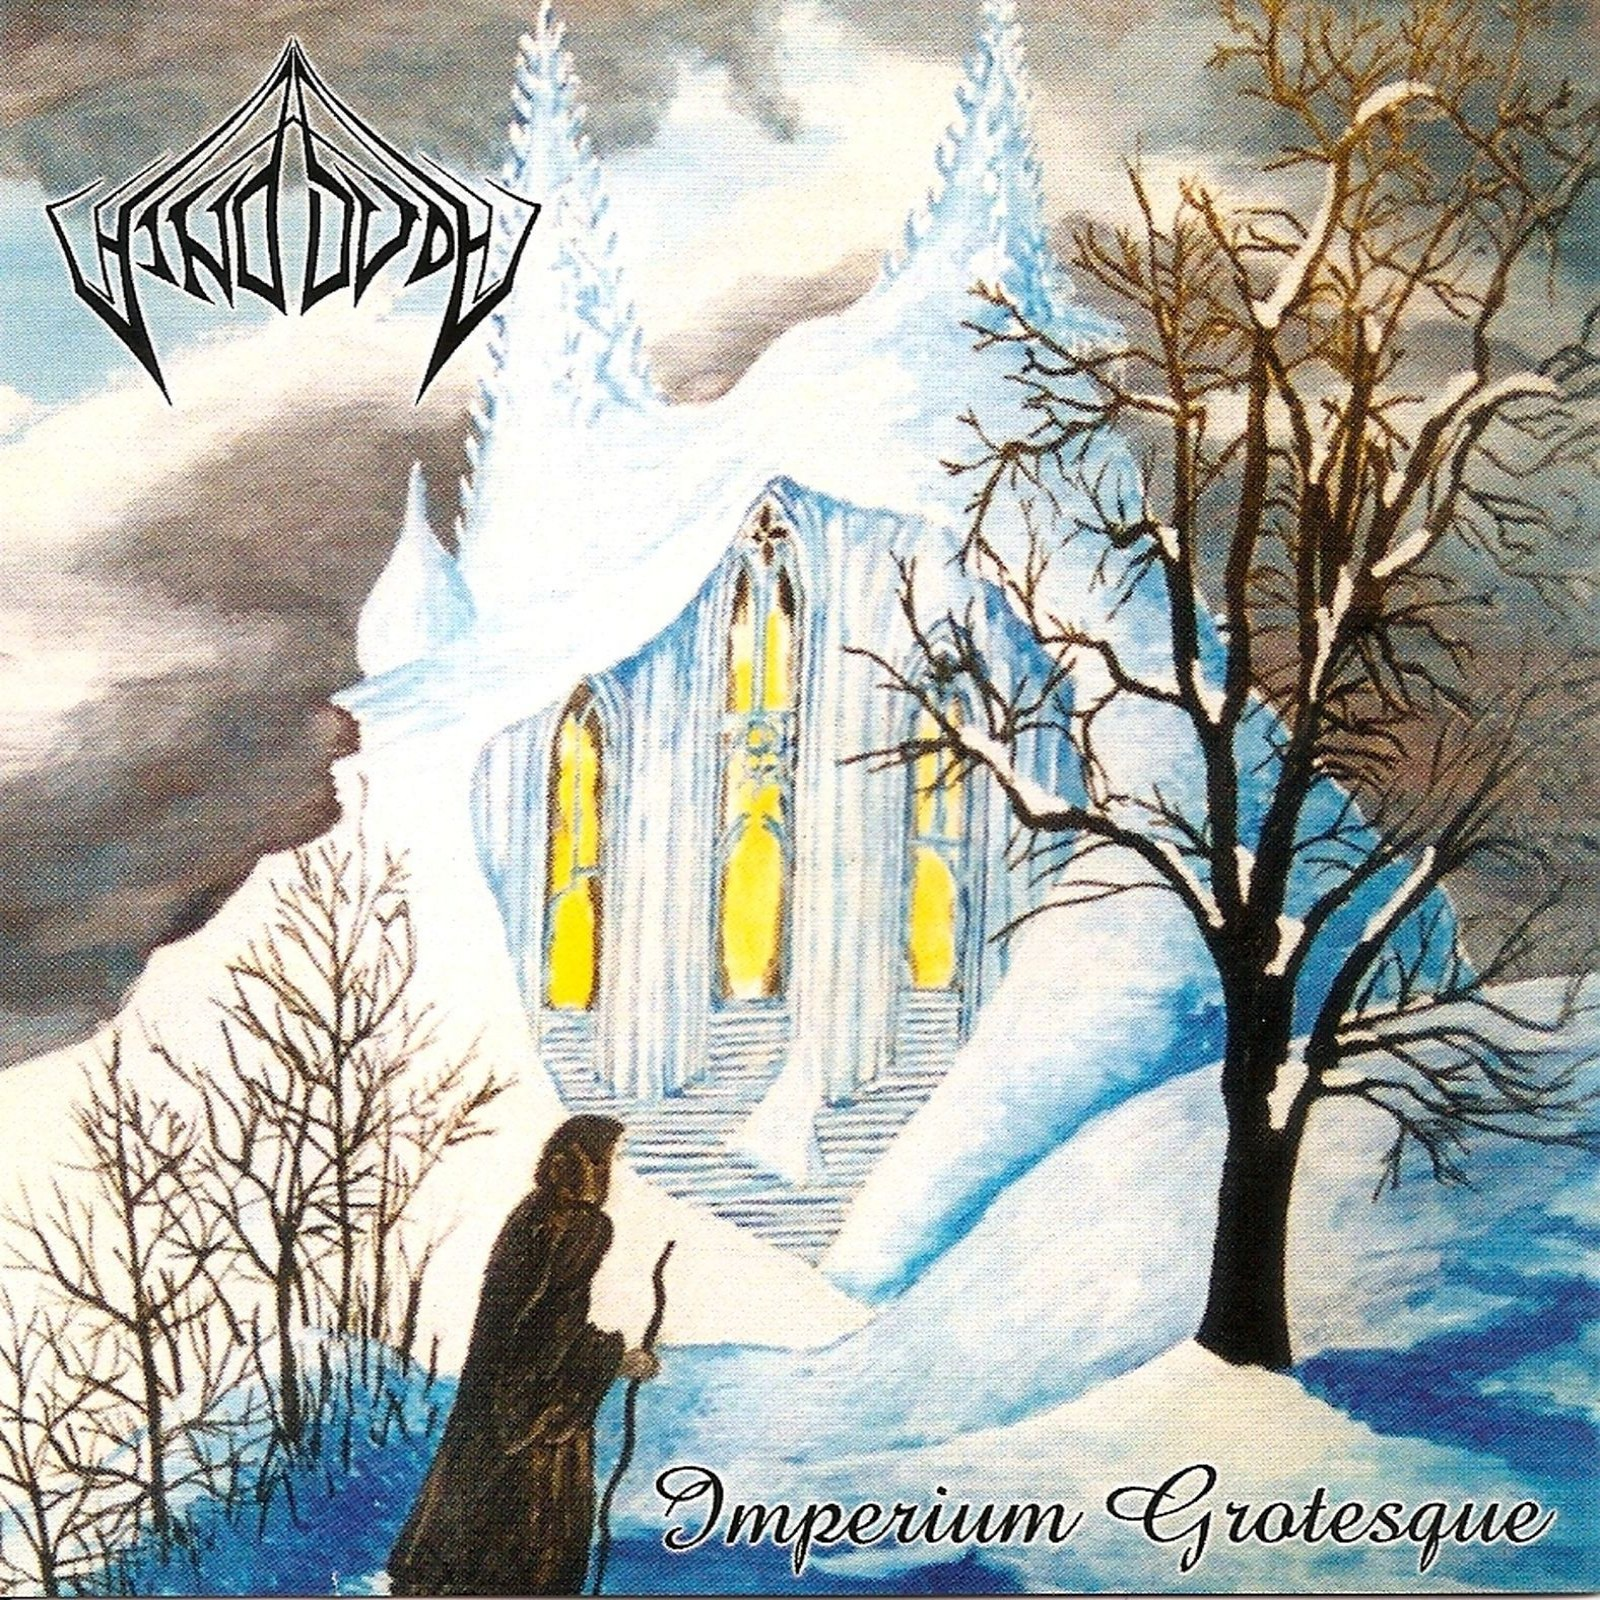 Review for Vindsval - Imperium Grotesque